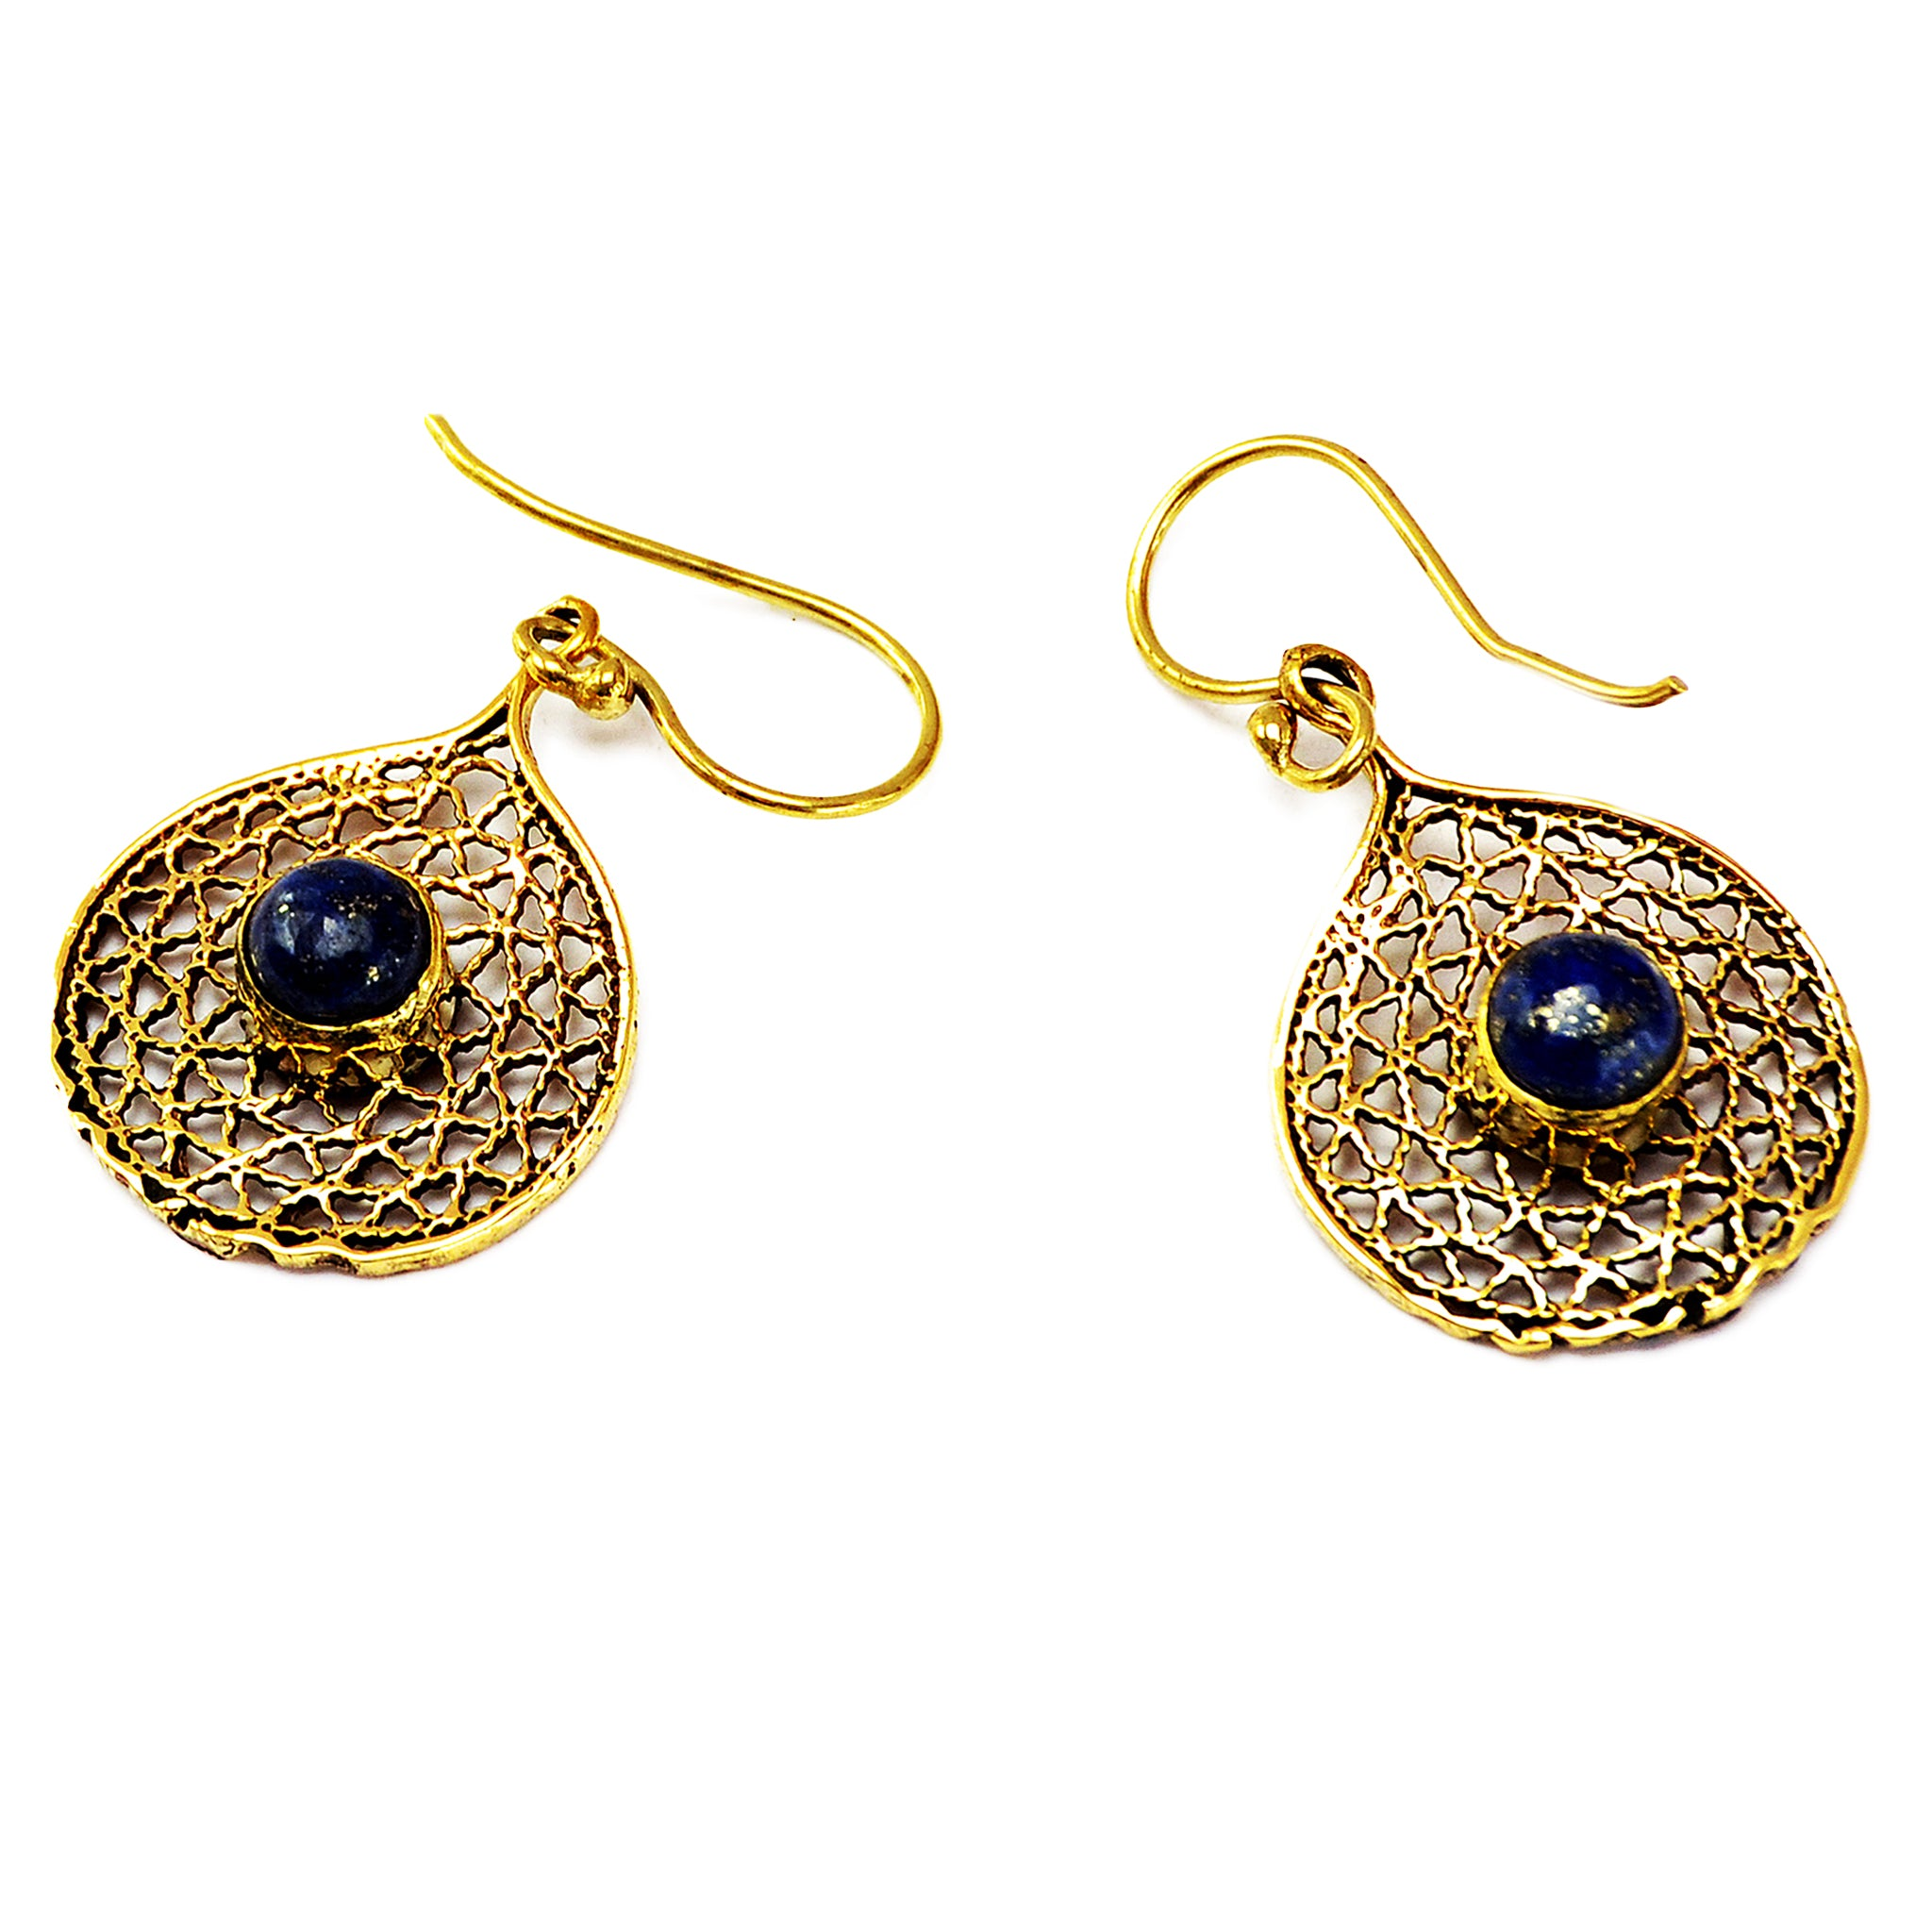 Ornate Filigree Earrings with Lapis Stone